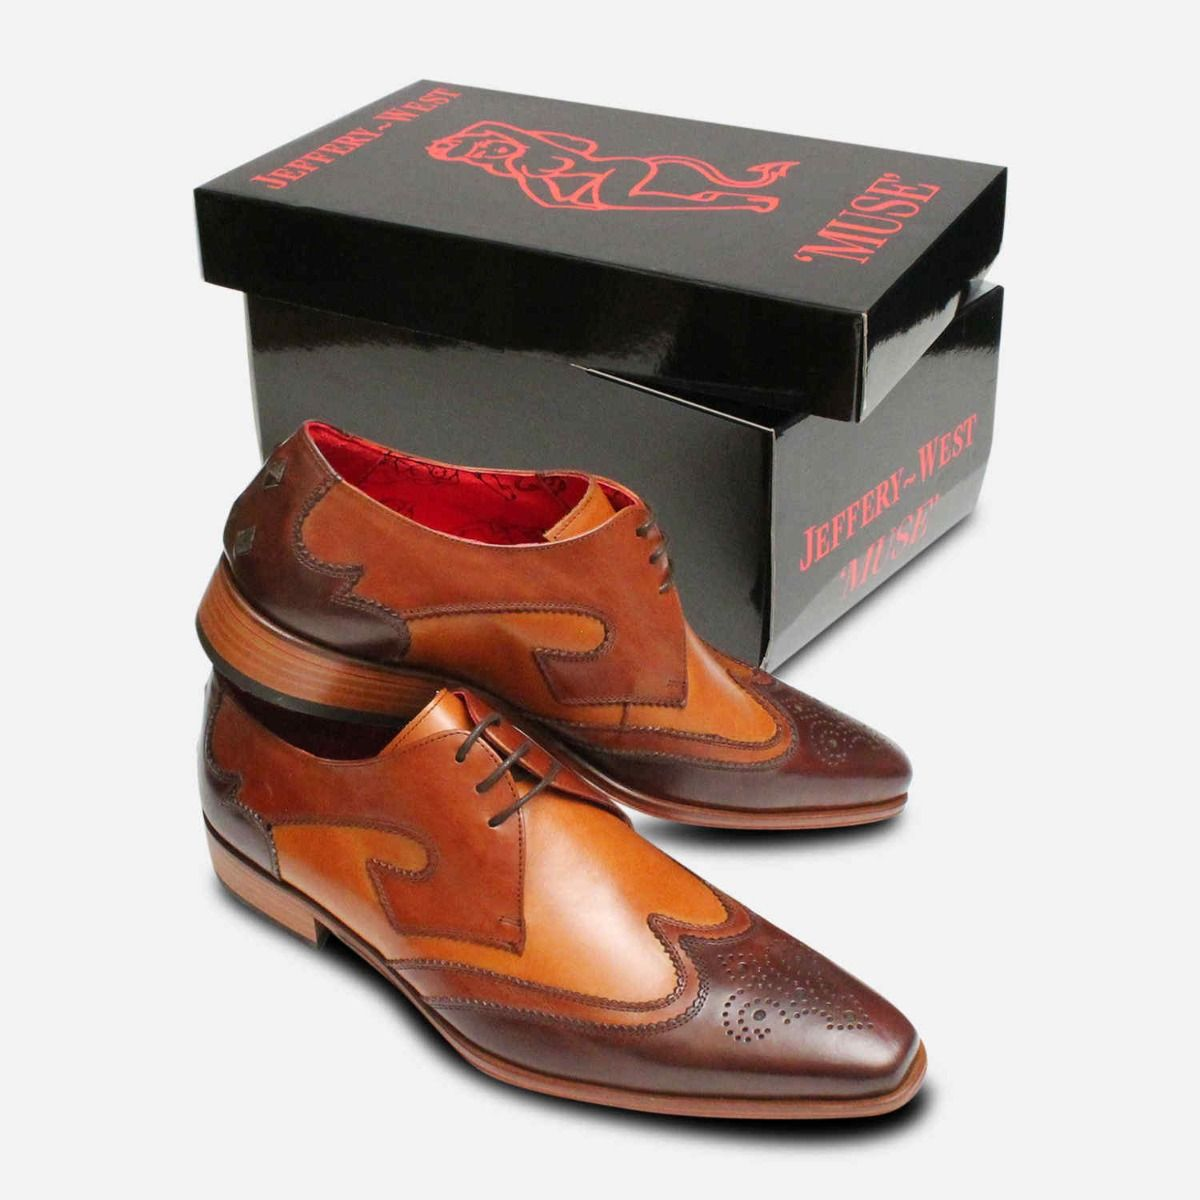 Two Tone Wingtip Brogues in Brown by Jeffery West